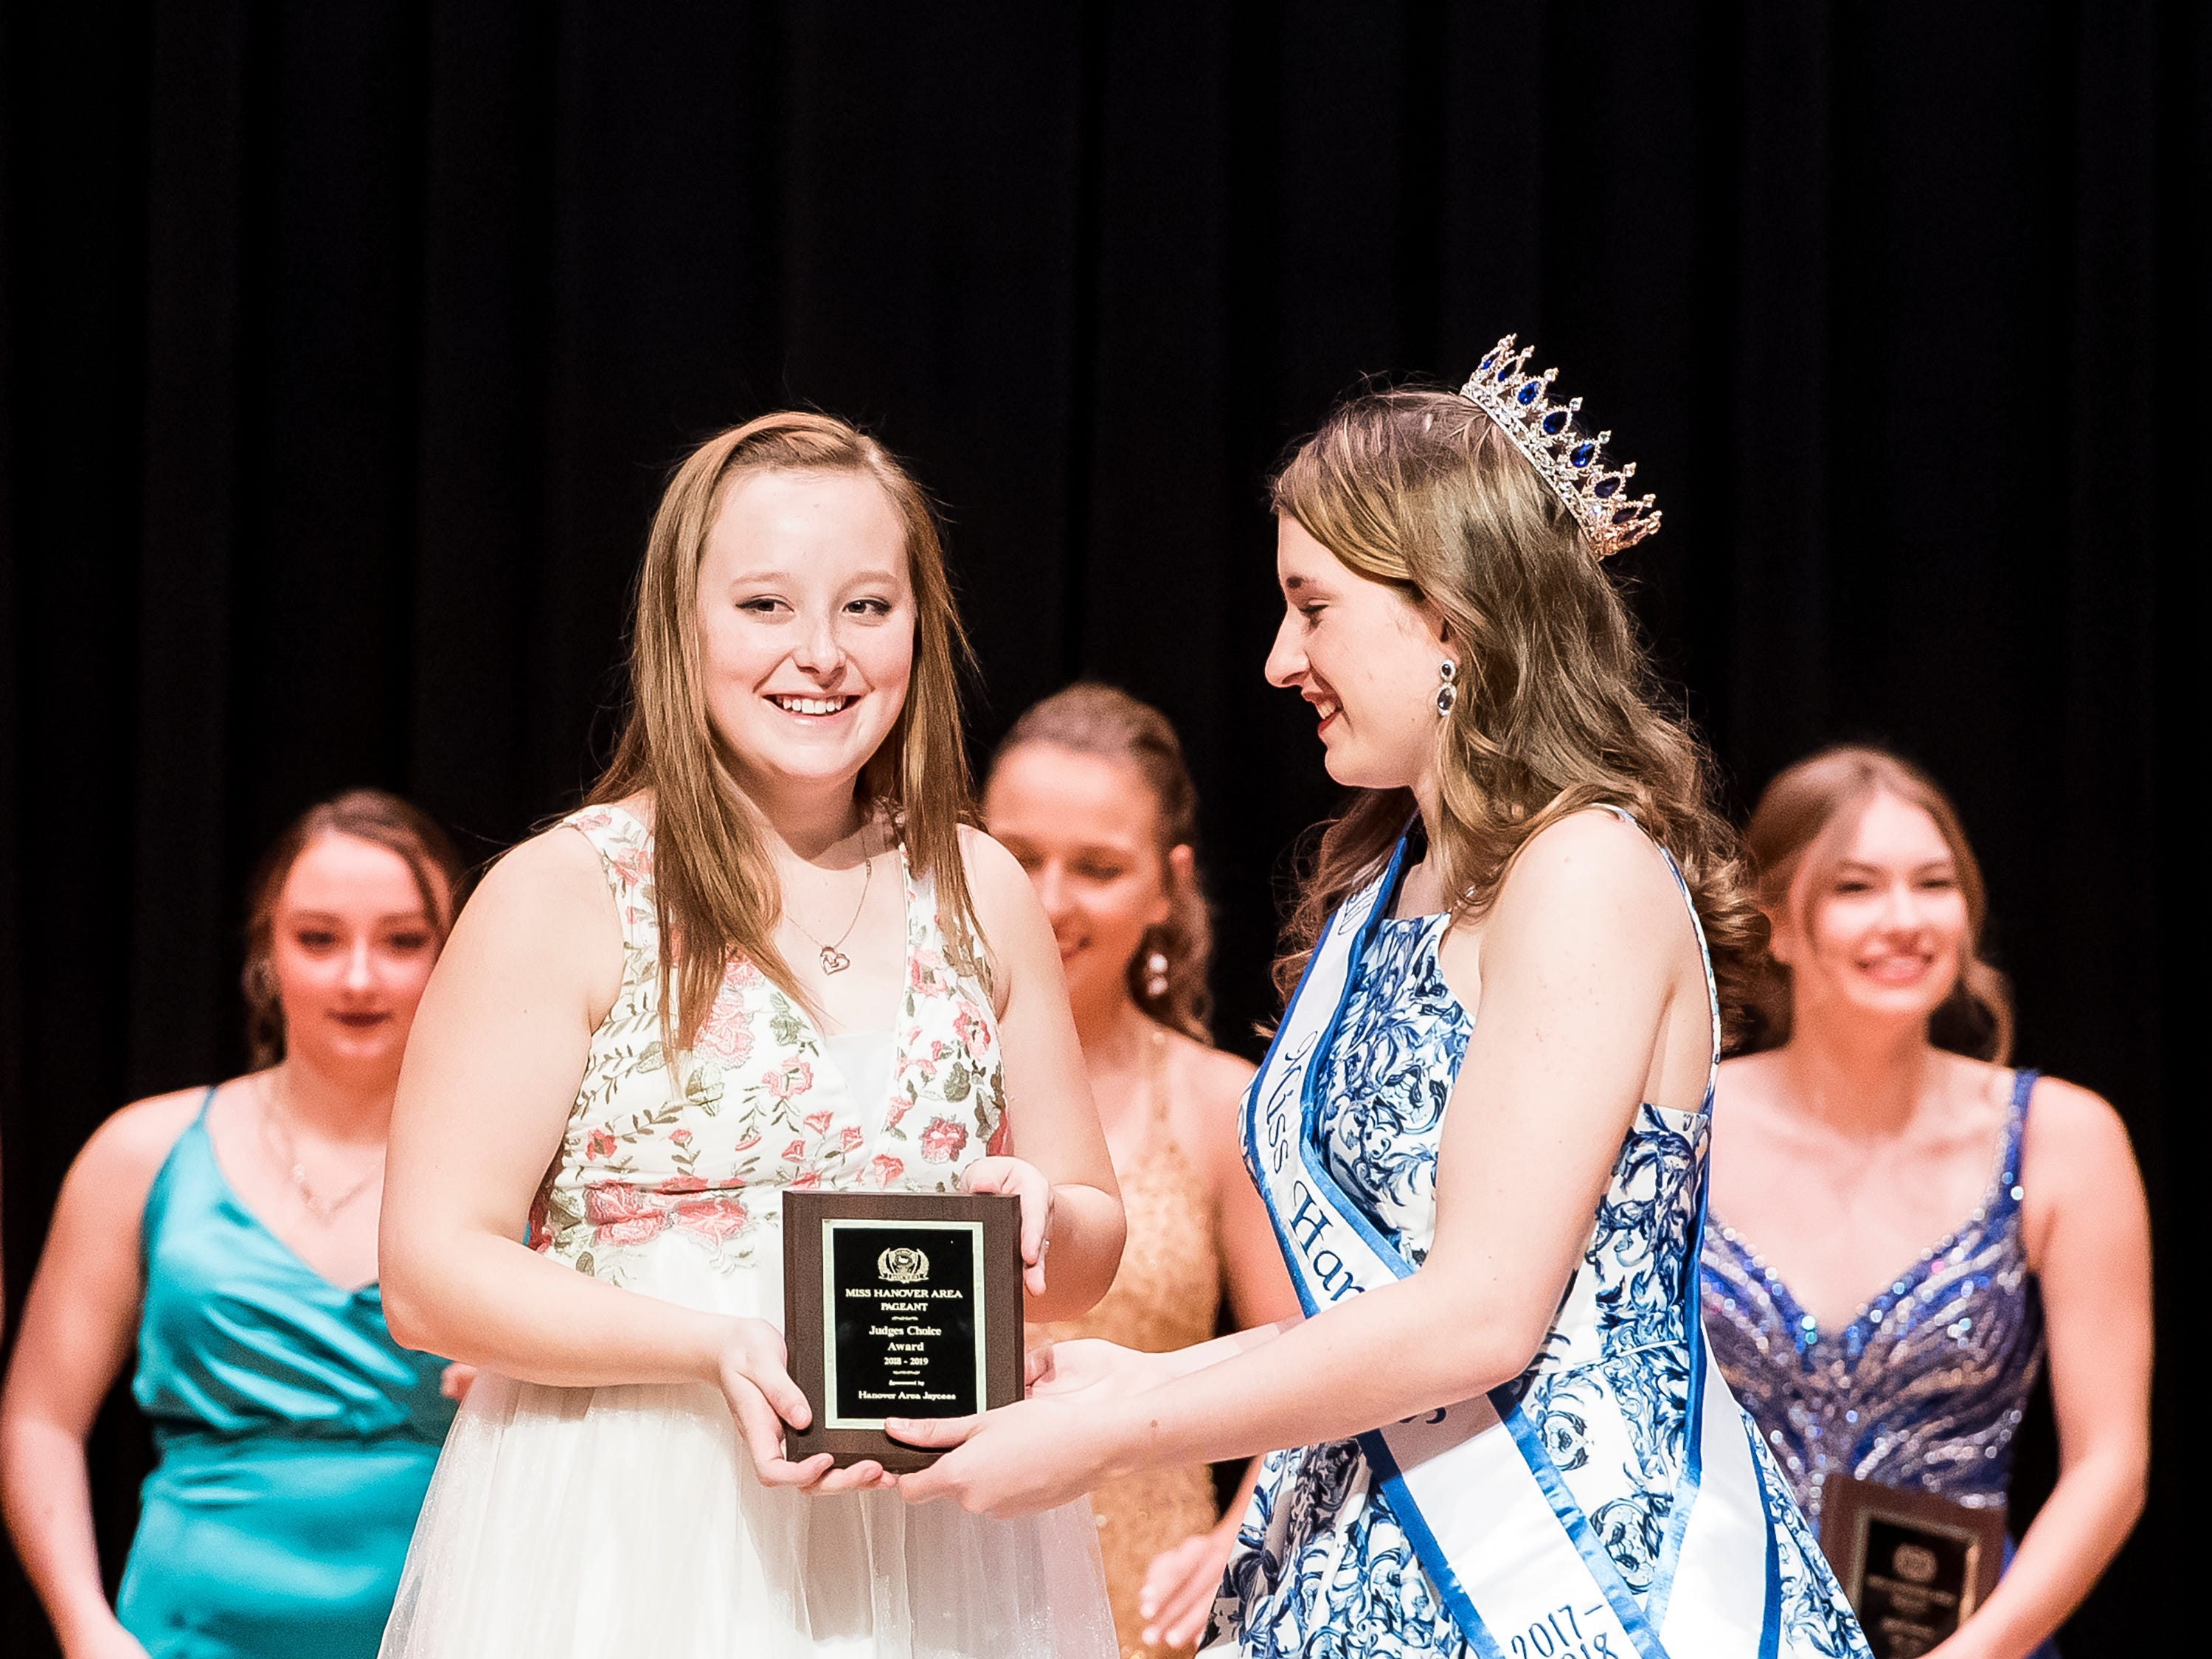 Alissa Wagaman is presented with the judges choice award at the 50th Miss Hanover Area pageant on Monday, October 22, 2018.